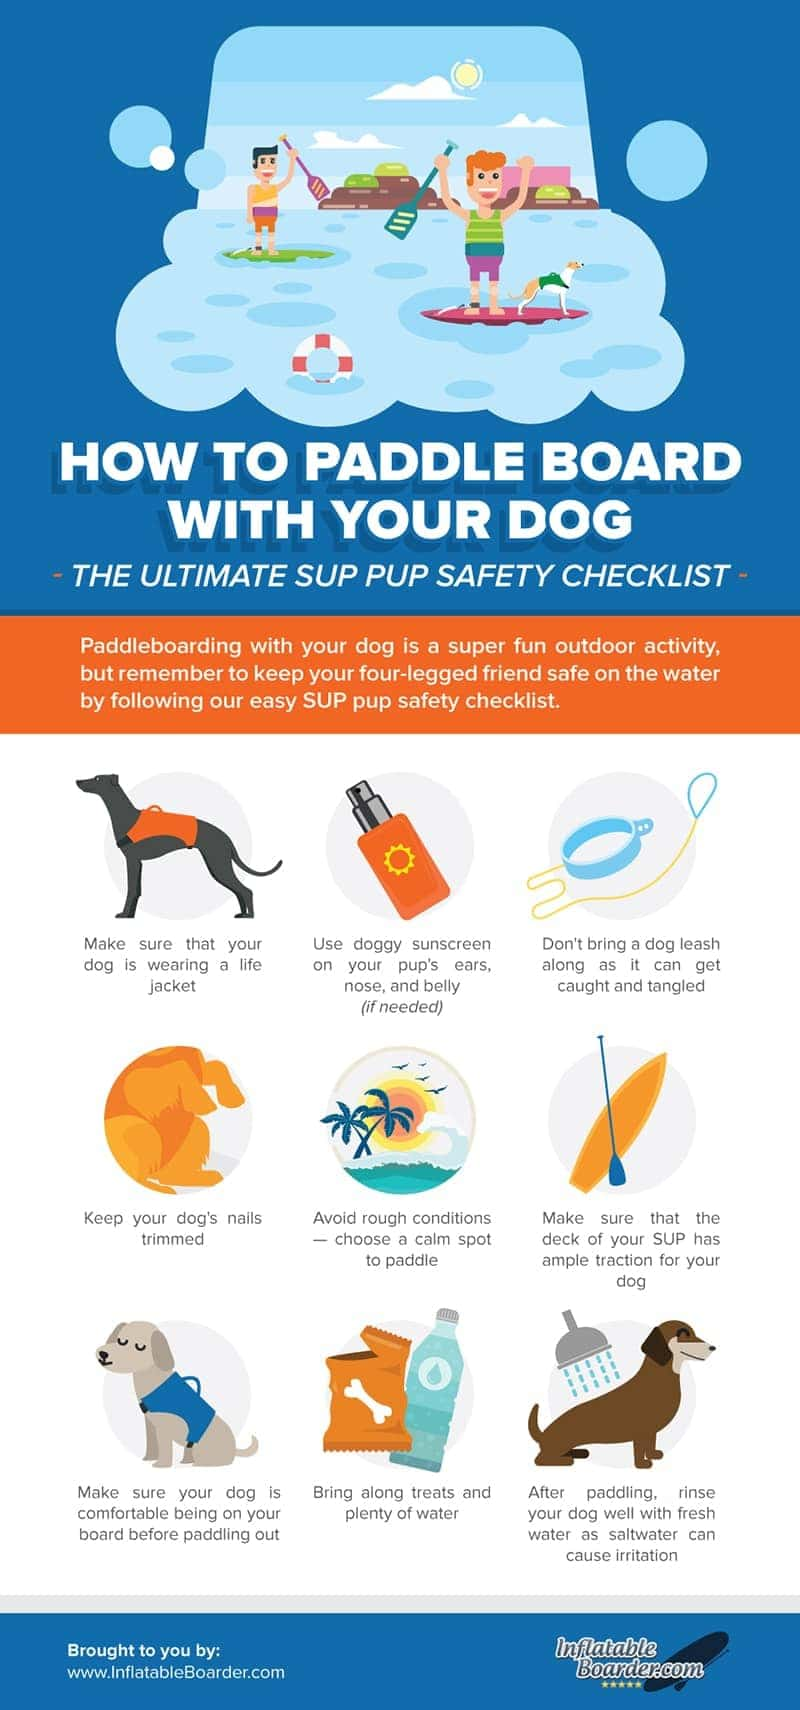 SUP Pup Safety Checklist